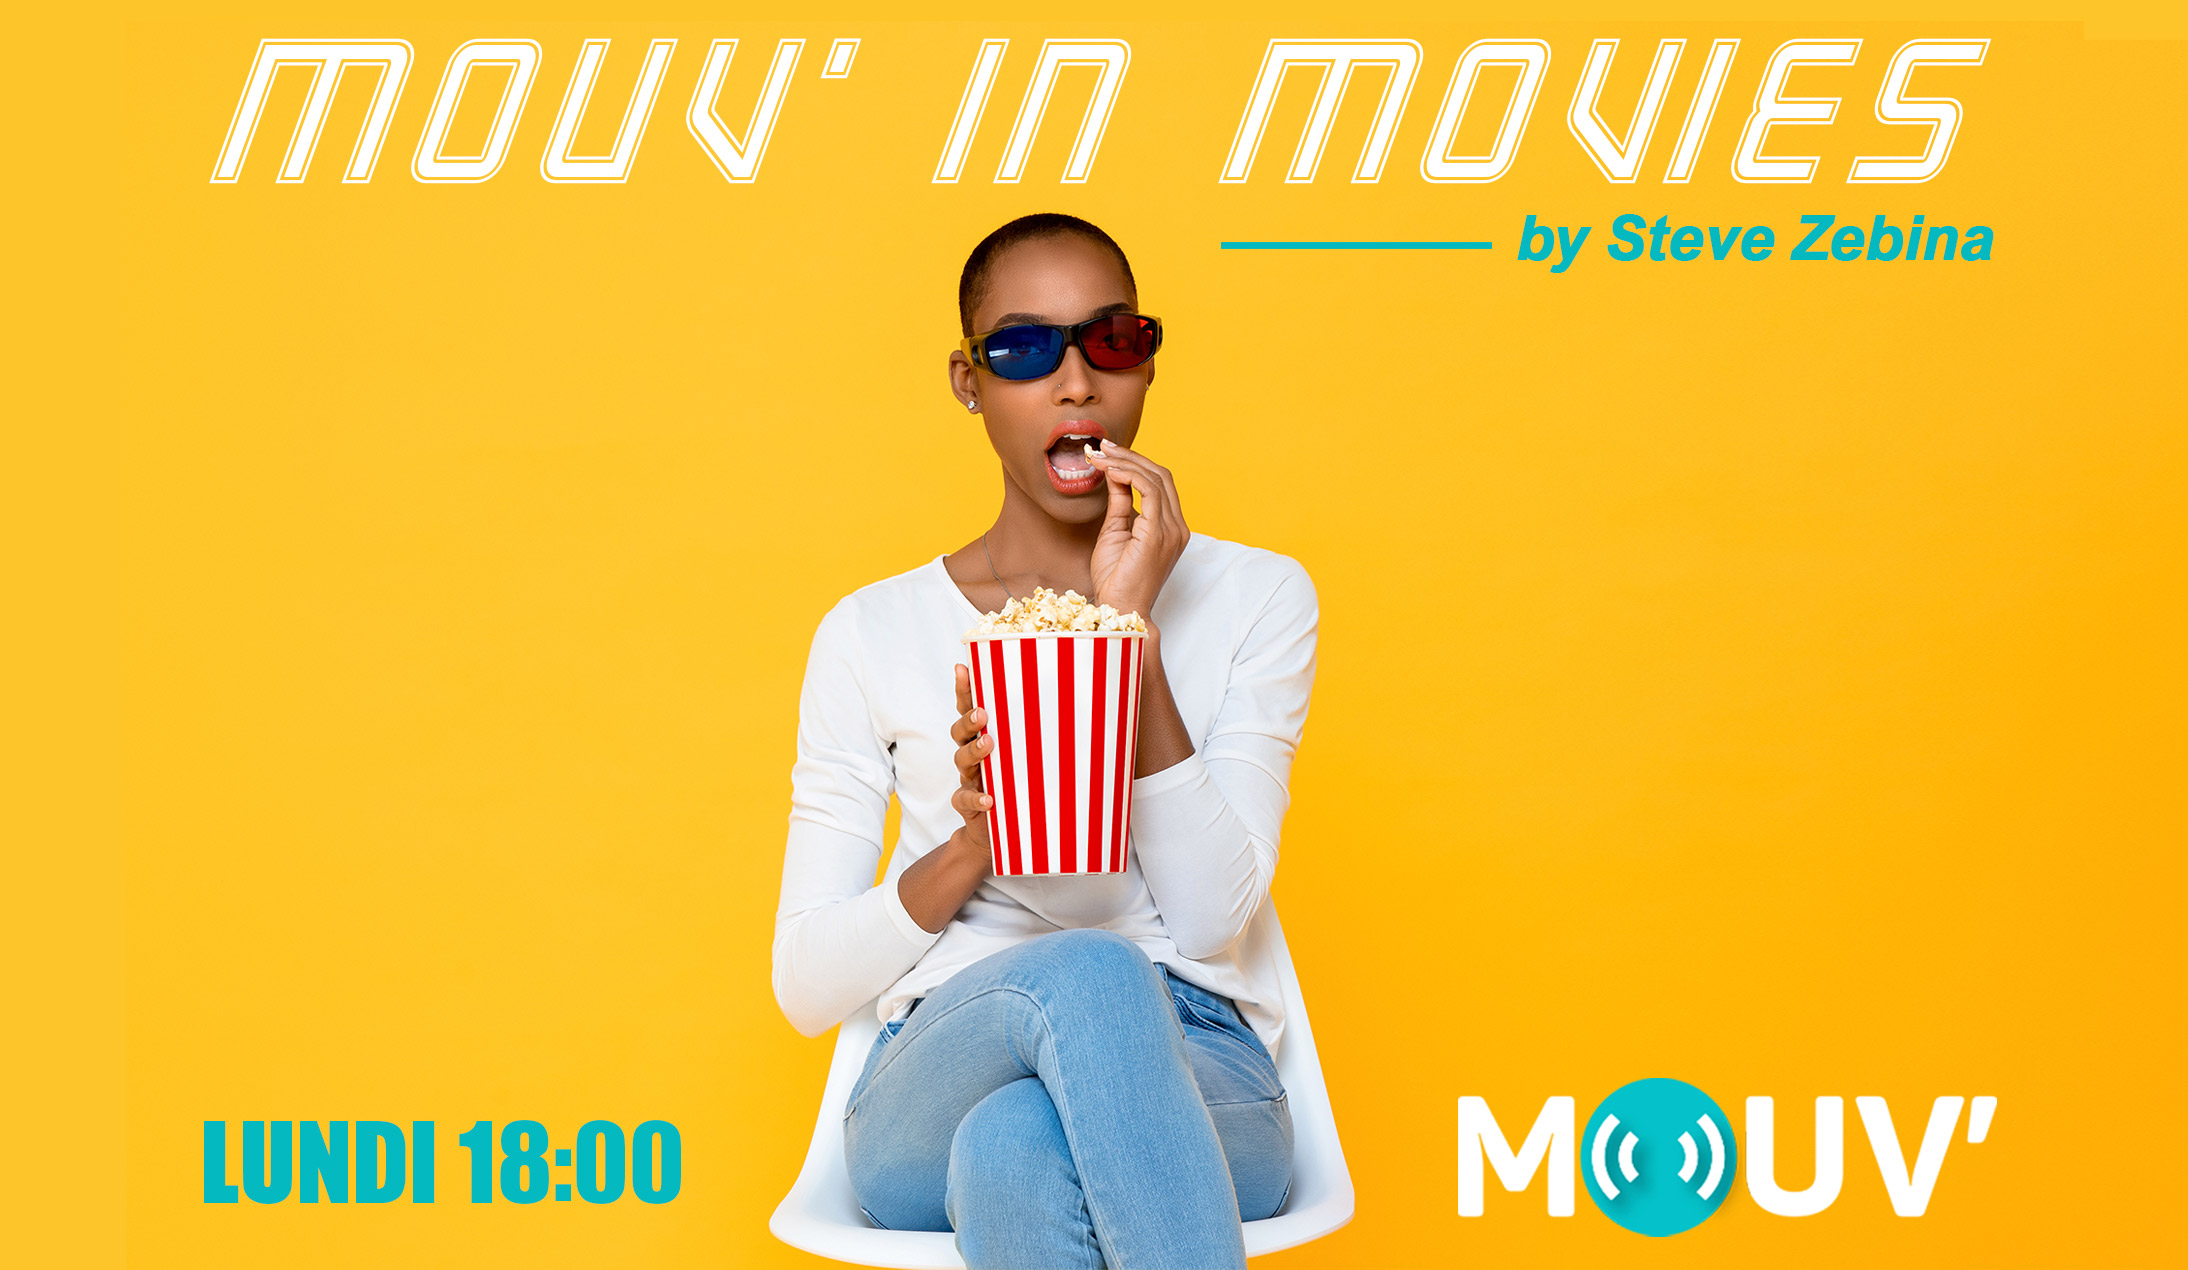 Mouv' in movies